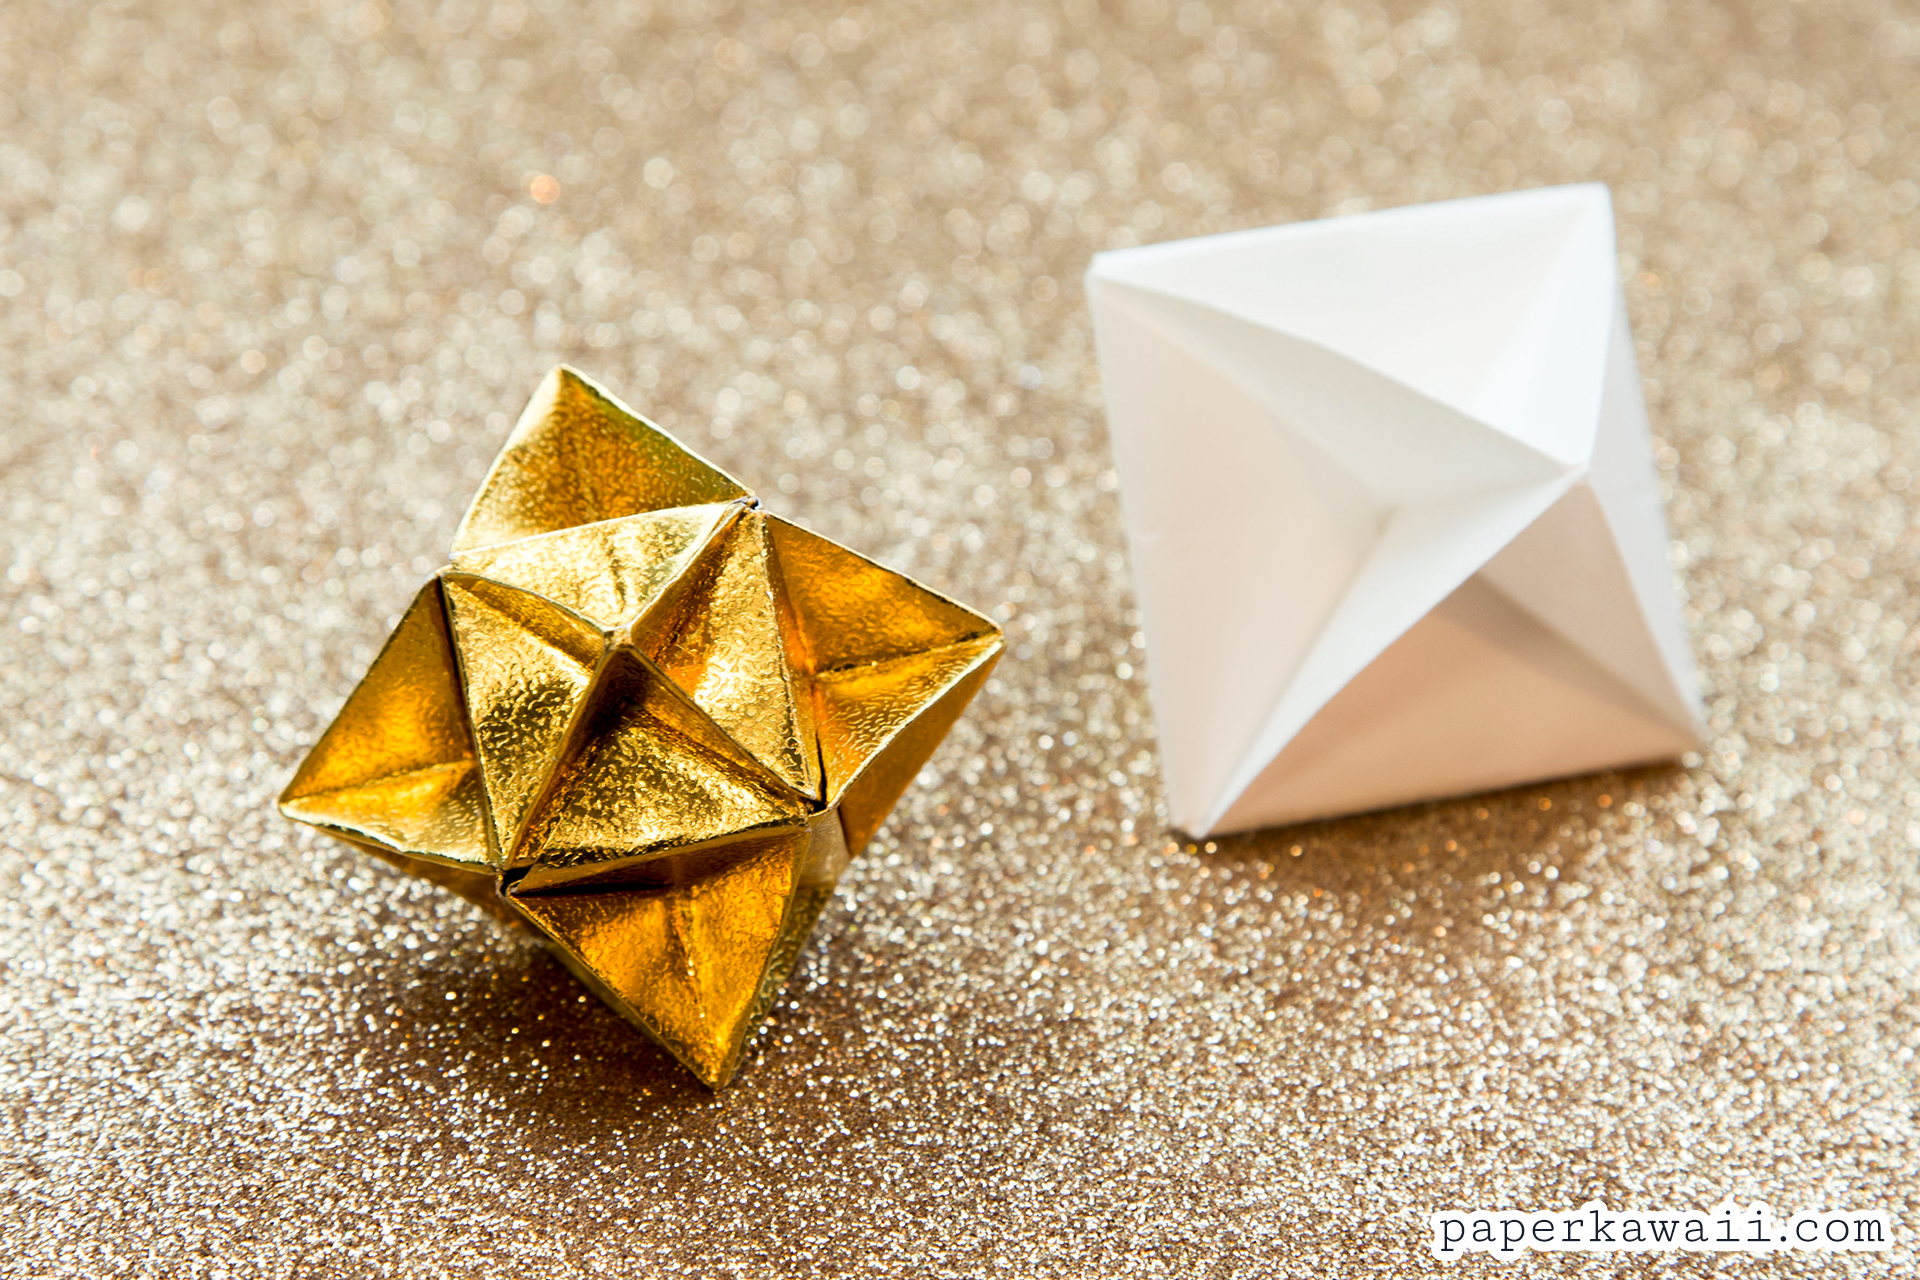 In Blog Comments 0 Email This Tags Star Origami Diagrams Wiring Diagram Instructions Cube Decoration Tutorial Paper Kawaii